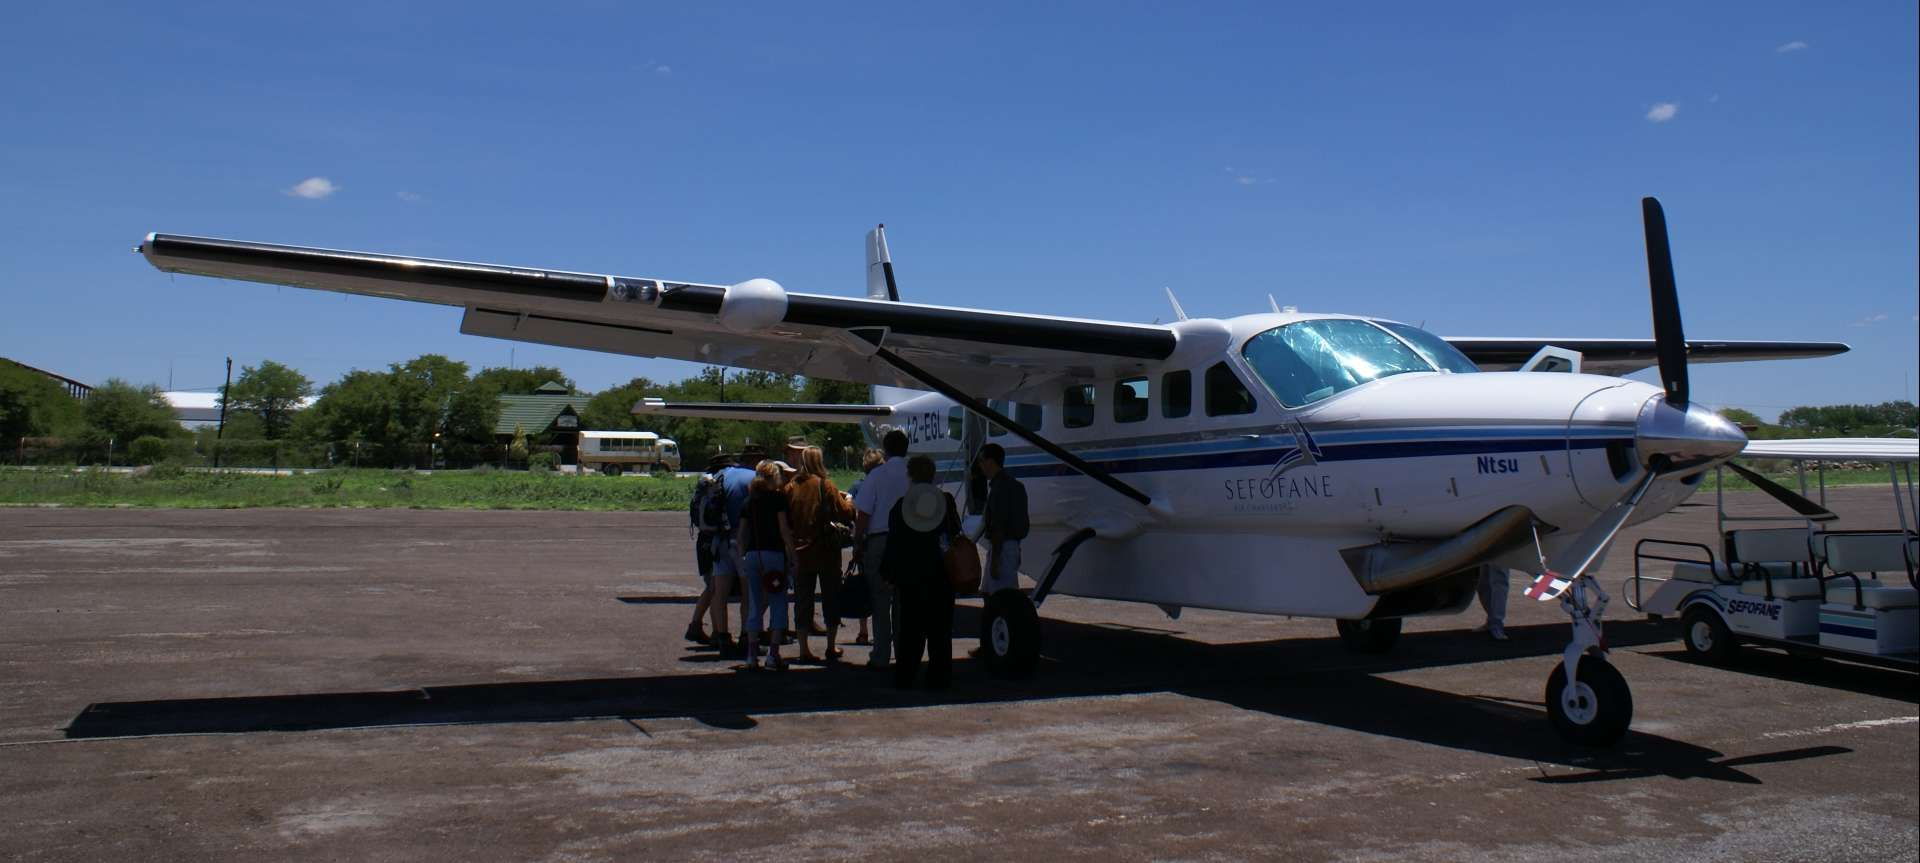 A charter flight from Maun International Airport